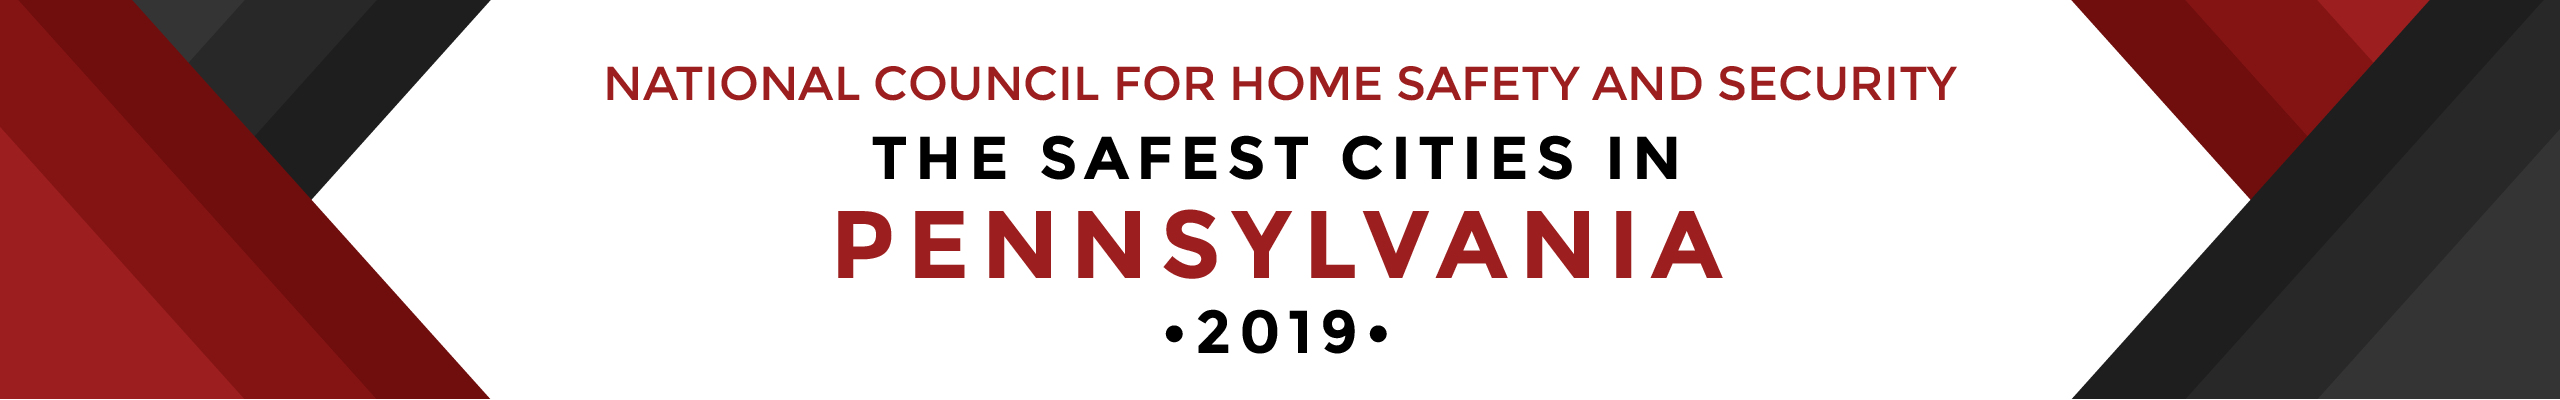 Safest Cities in Pennsylvania, 2019 | National Council For